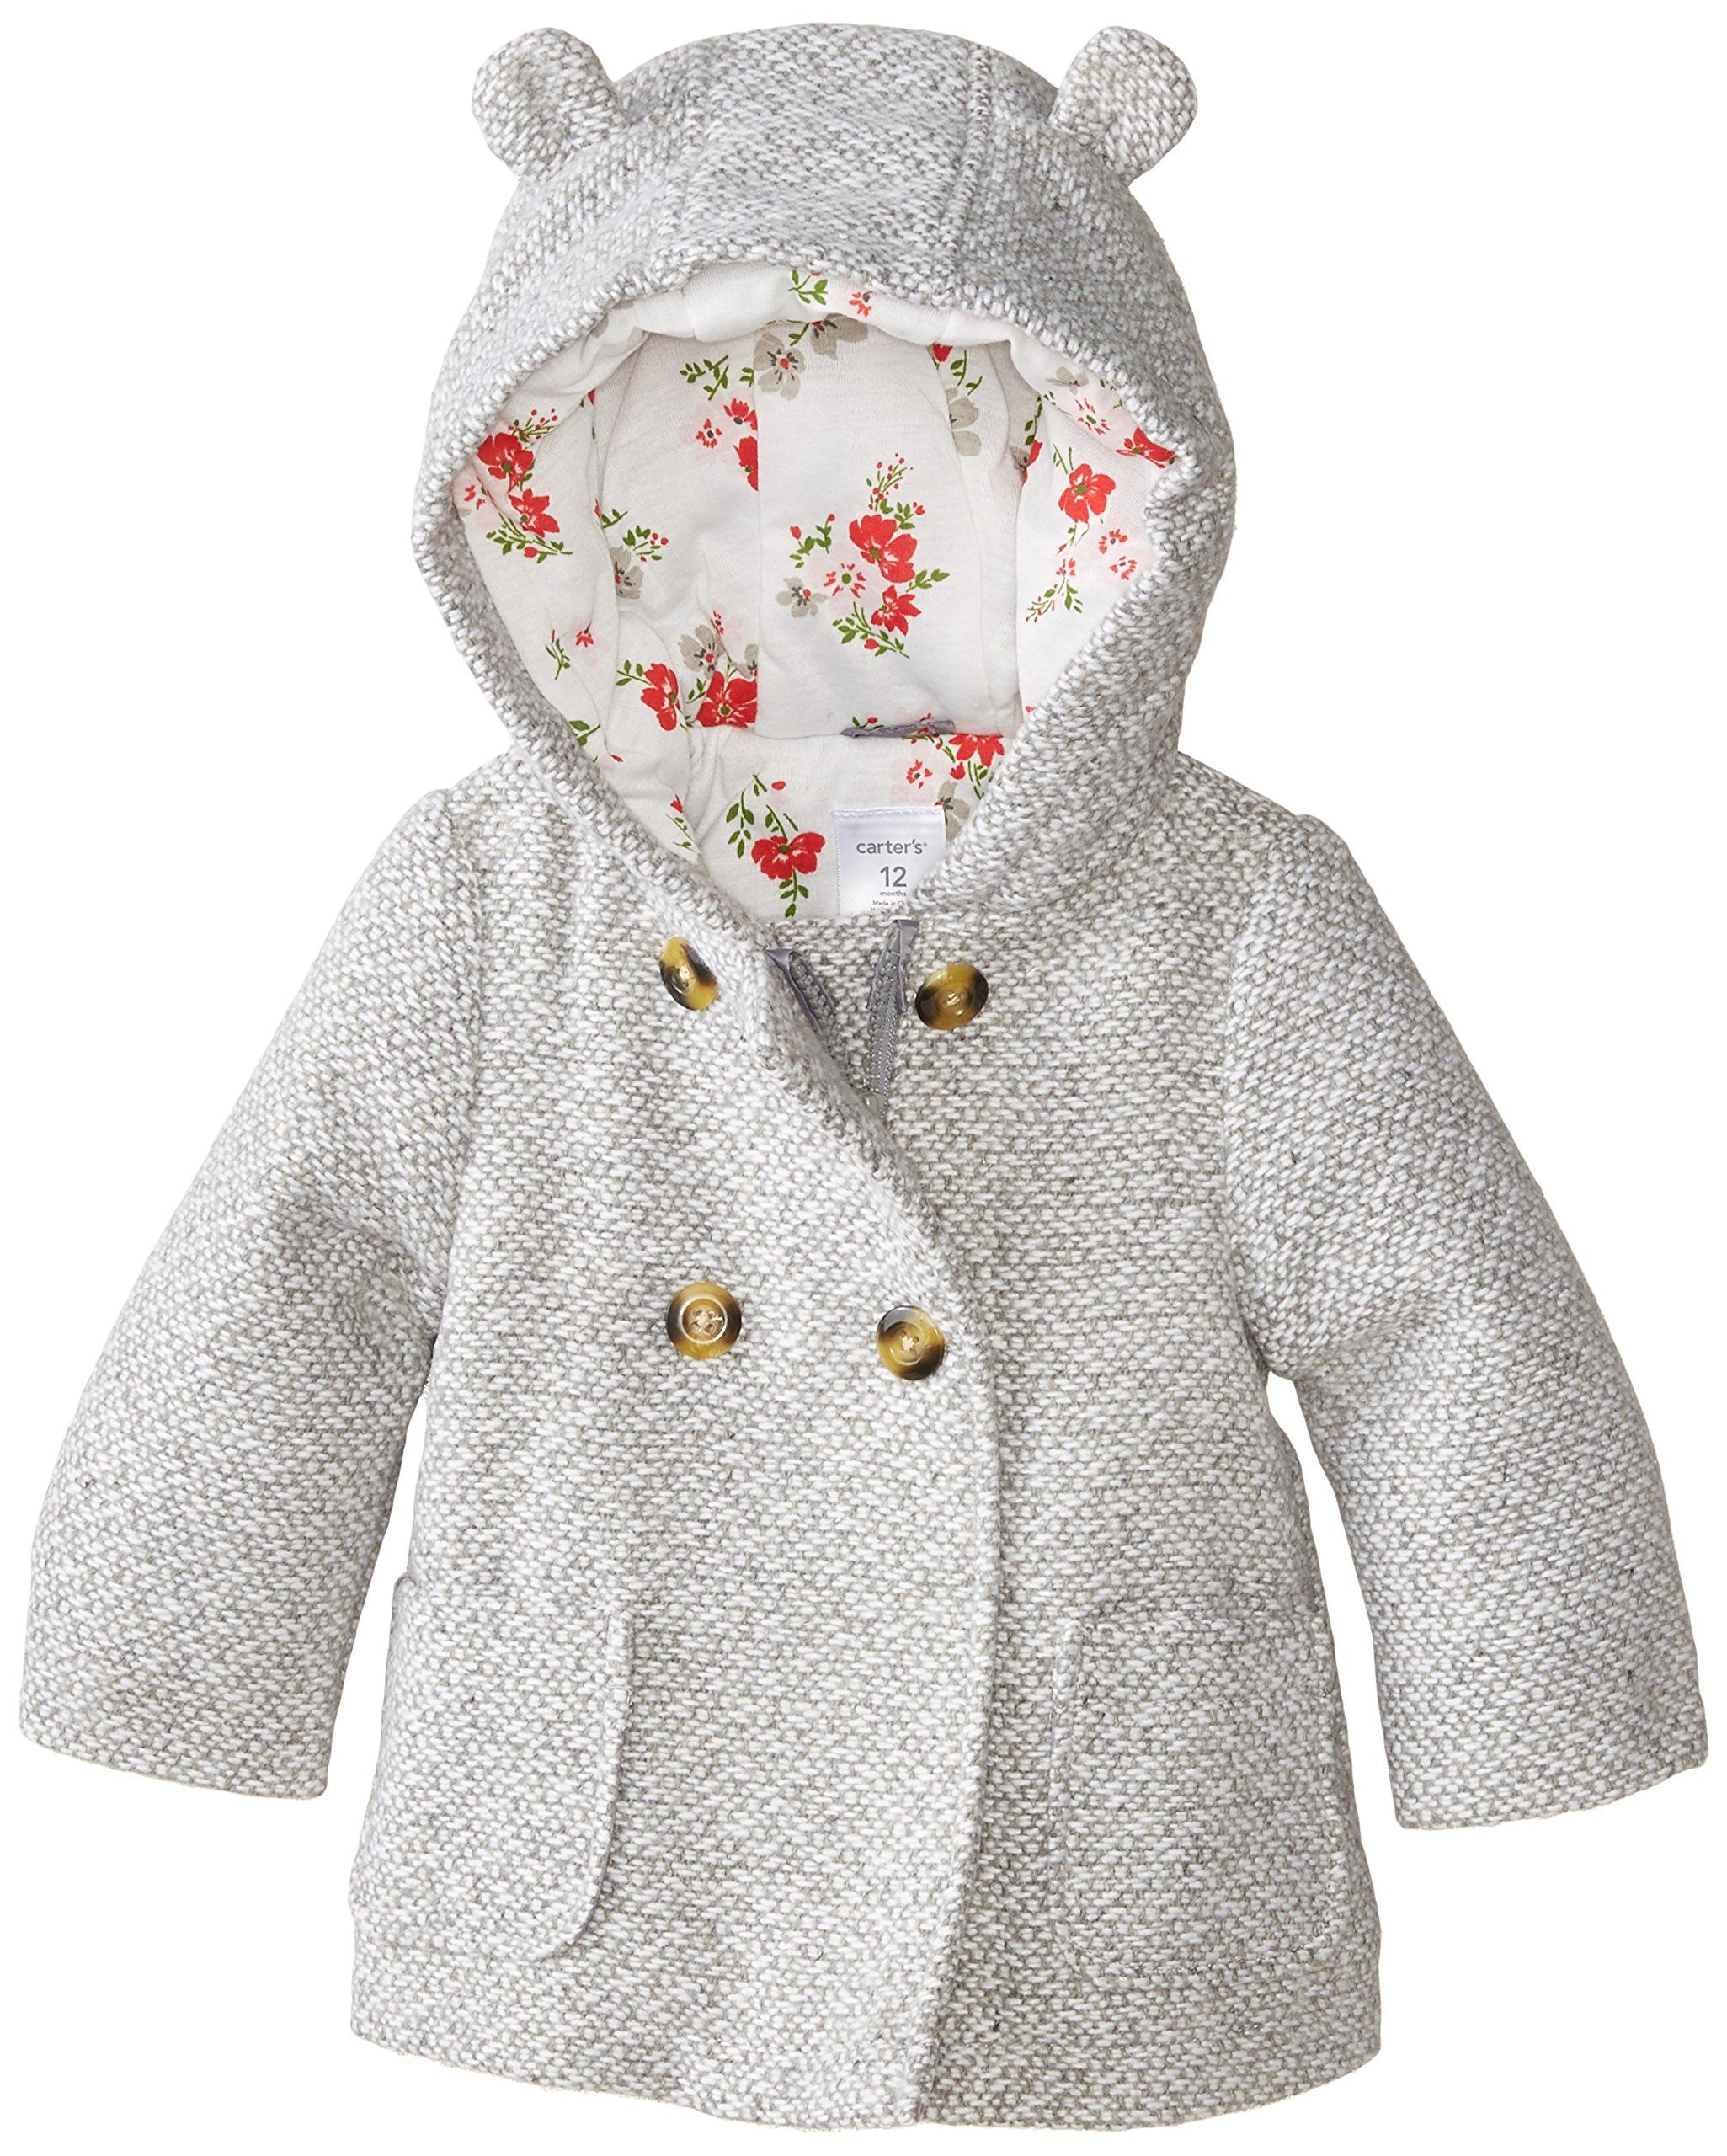 Amazon.com: Carter's Baby Girls' Infants Trans Single Jacket